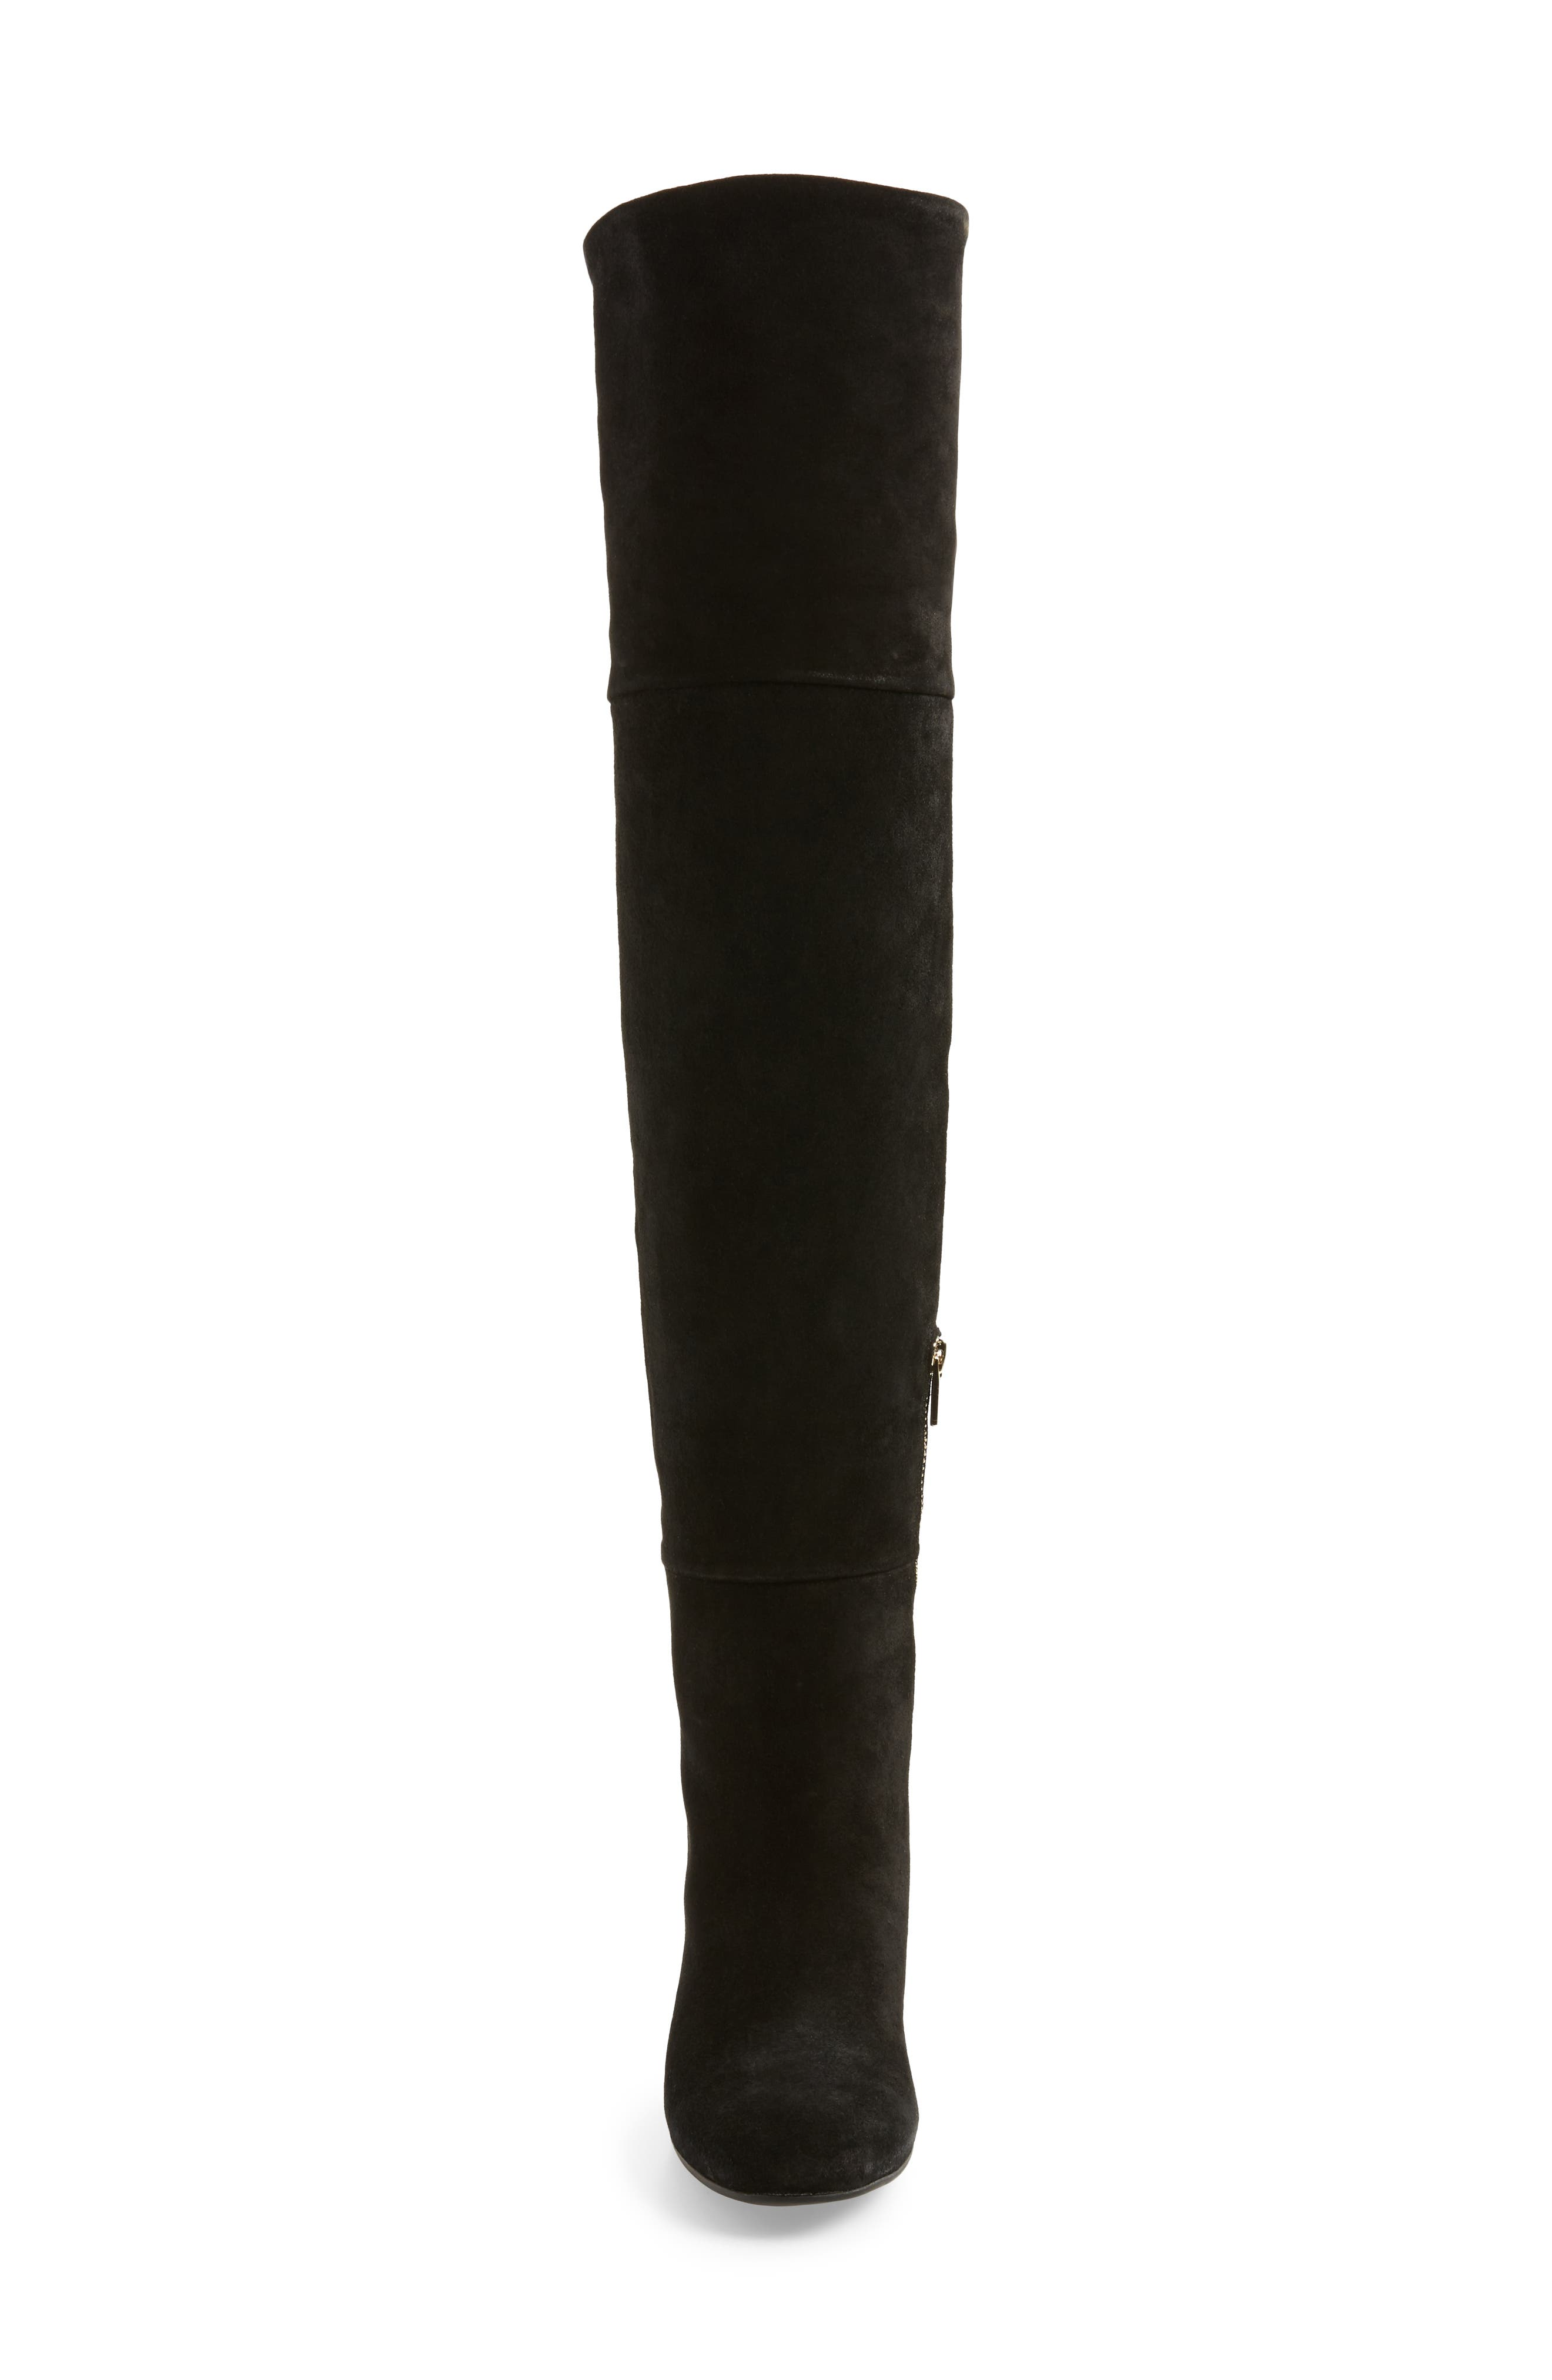 Catherine Over the Knee Boot,                             Alternate thumbnail 4, color,                             004